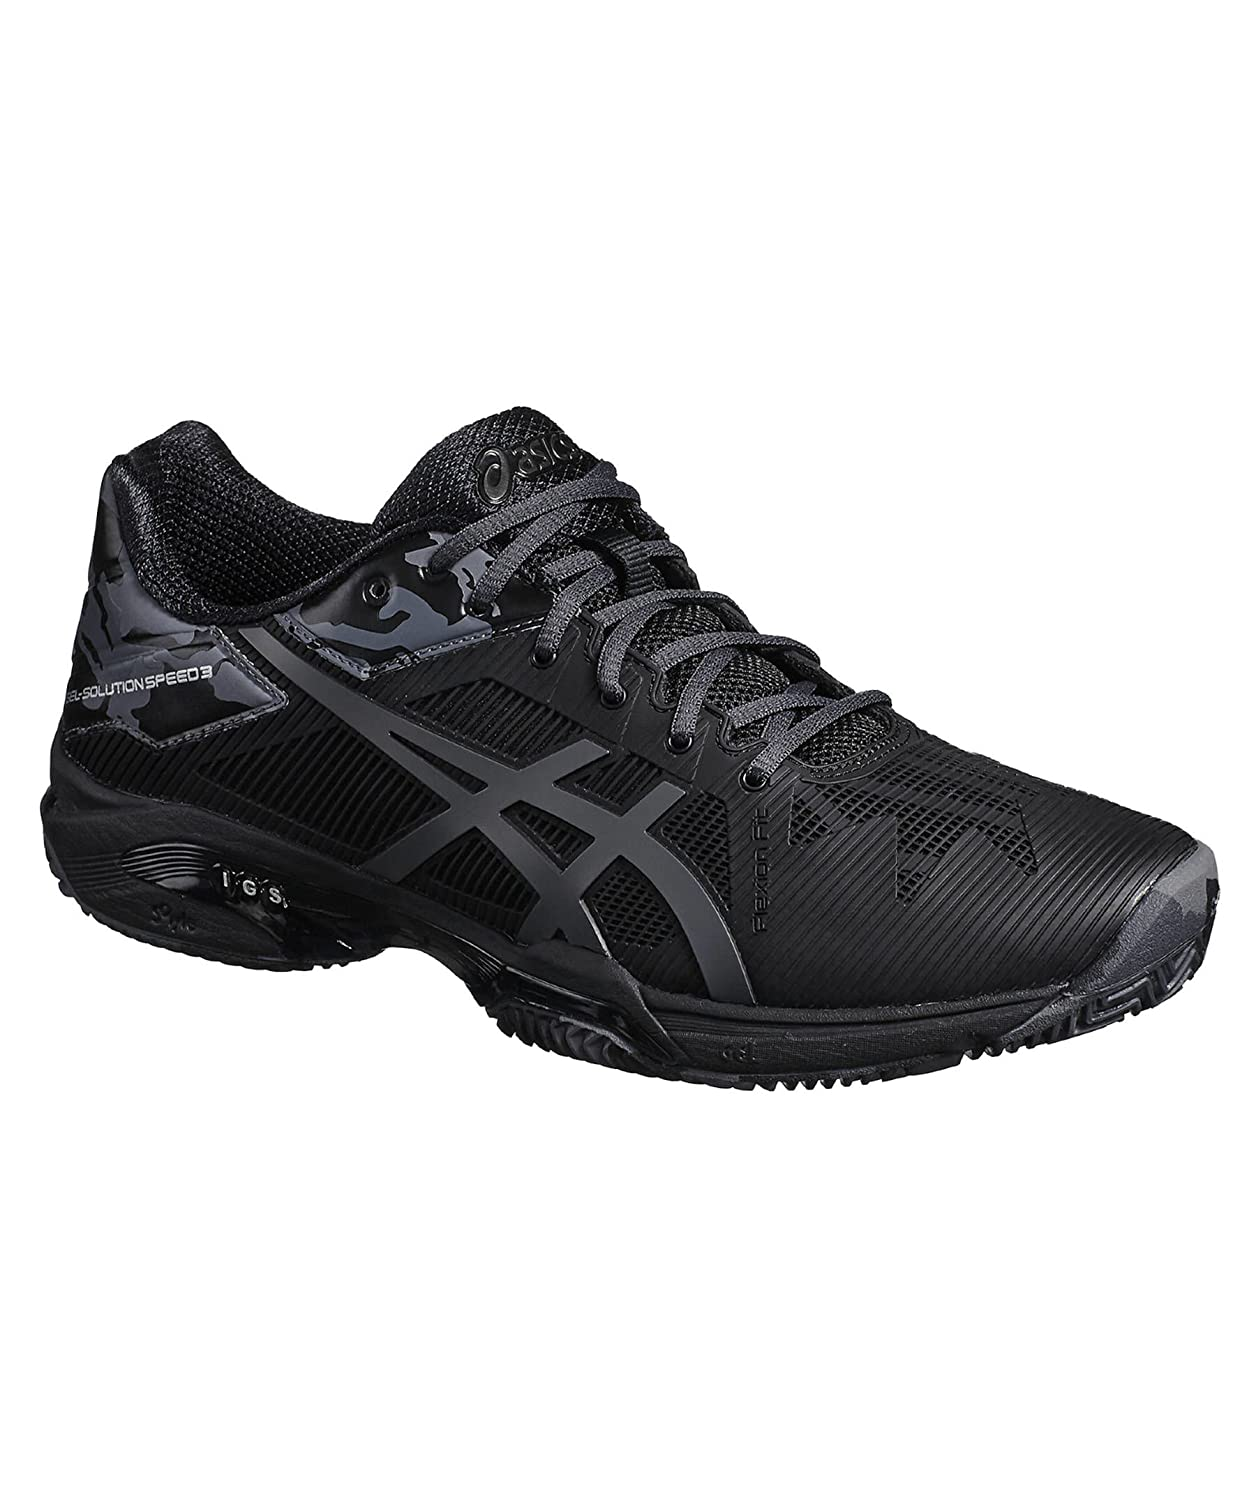 Asics Chaussures Gel-Solution Speed 3 Clay L.E.: Amazon.es: Deportes y aire libre